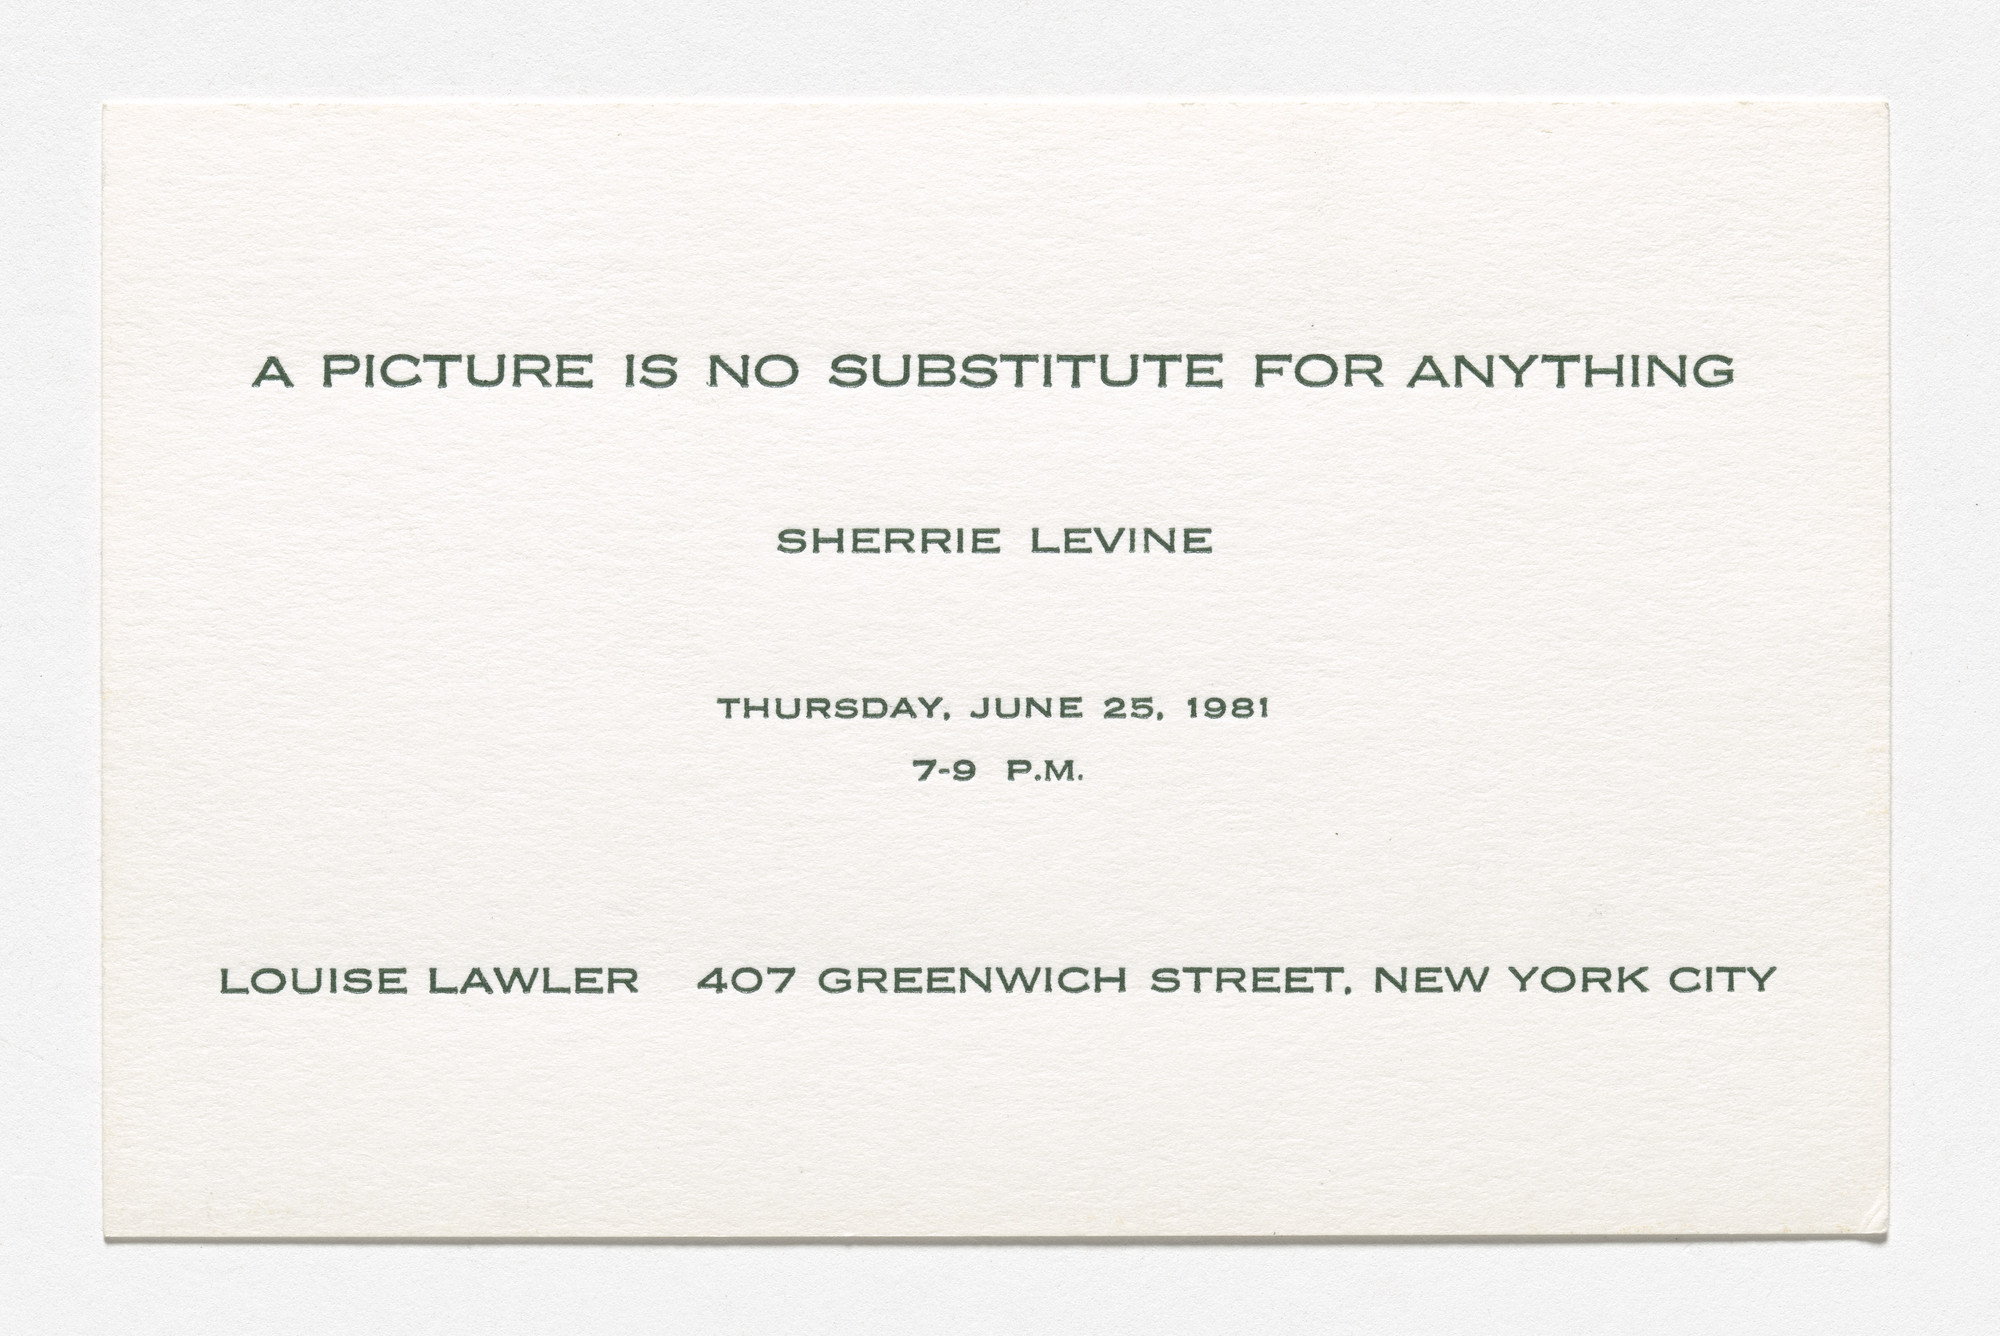 Louise Lawler, Sherrie Levine. Announcement card for A Picture Is No Substitute for Anything, Louise Lawler, 407 Greenwich Street, New York, June 25, 1981. 1981